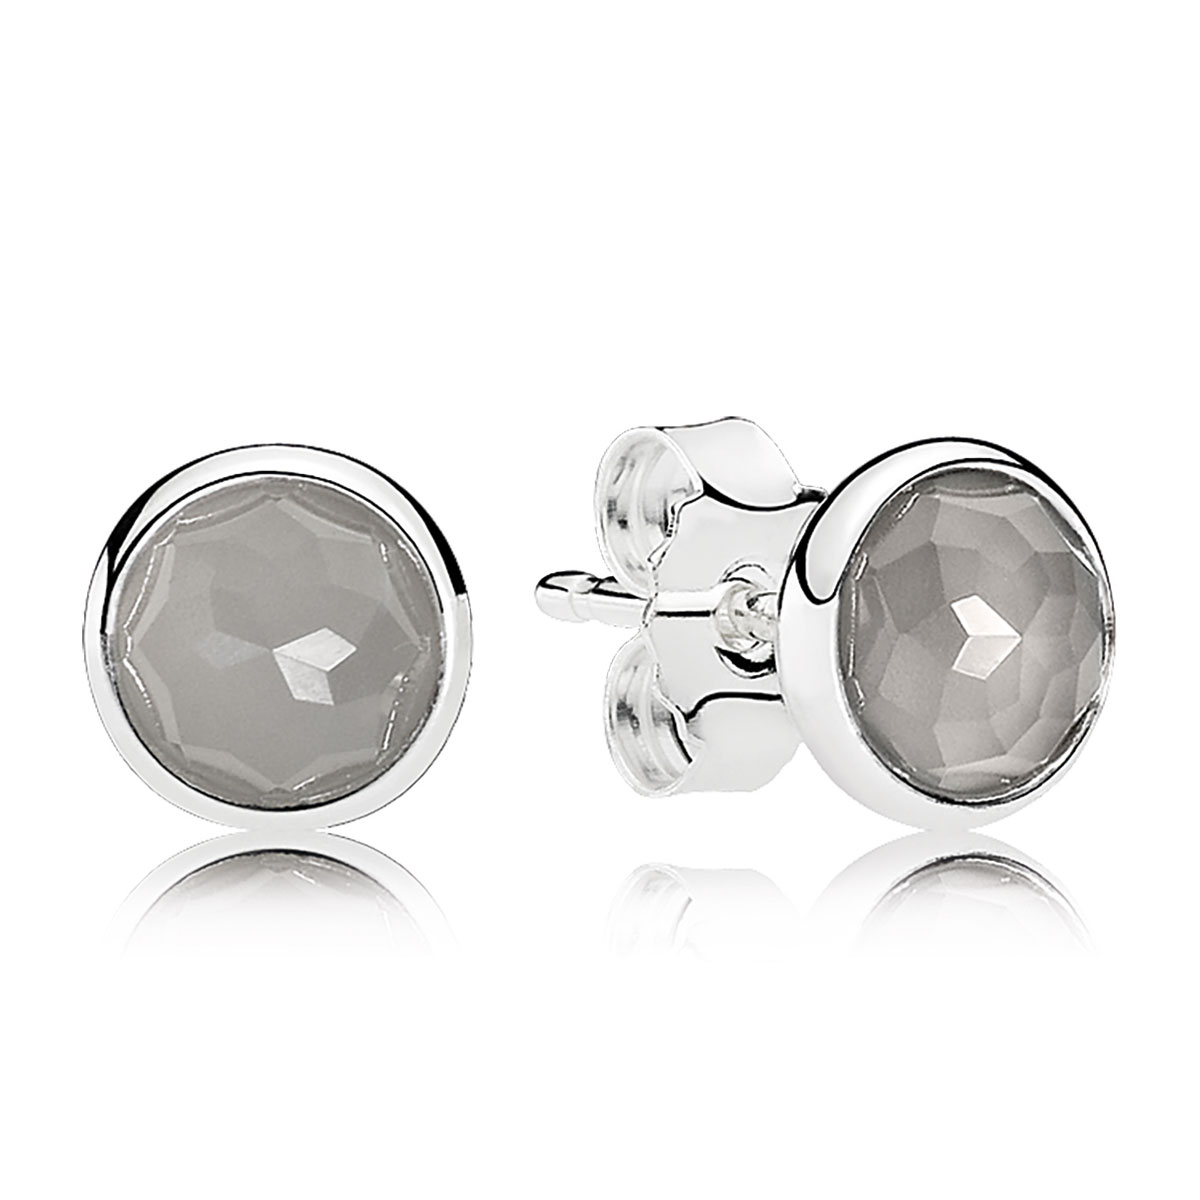 PANDORA June Droplets, Grey Moonstone Earrings - RETIRED 1 Left!